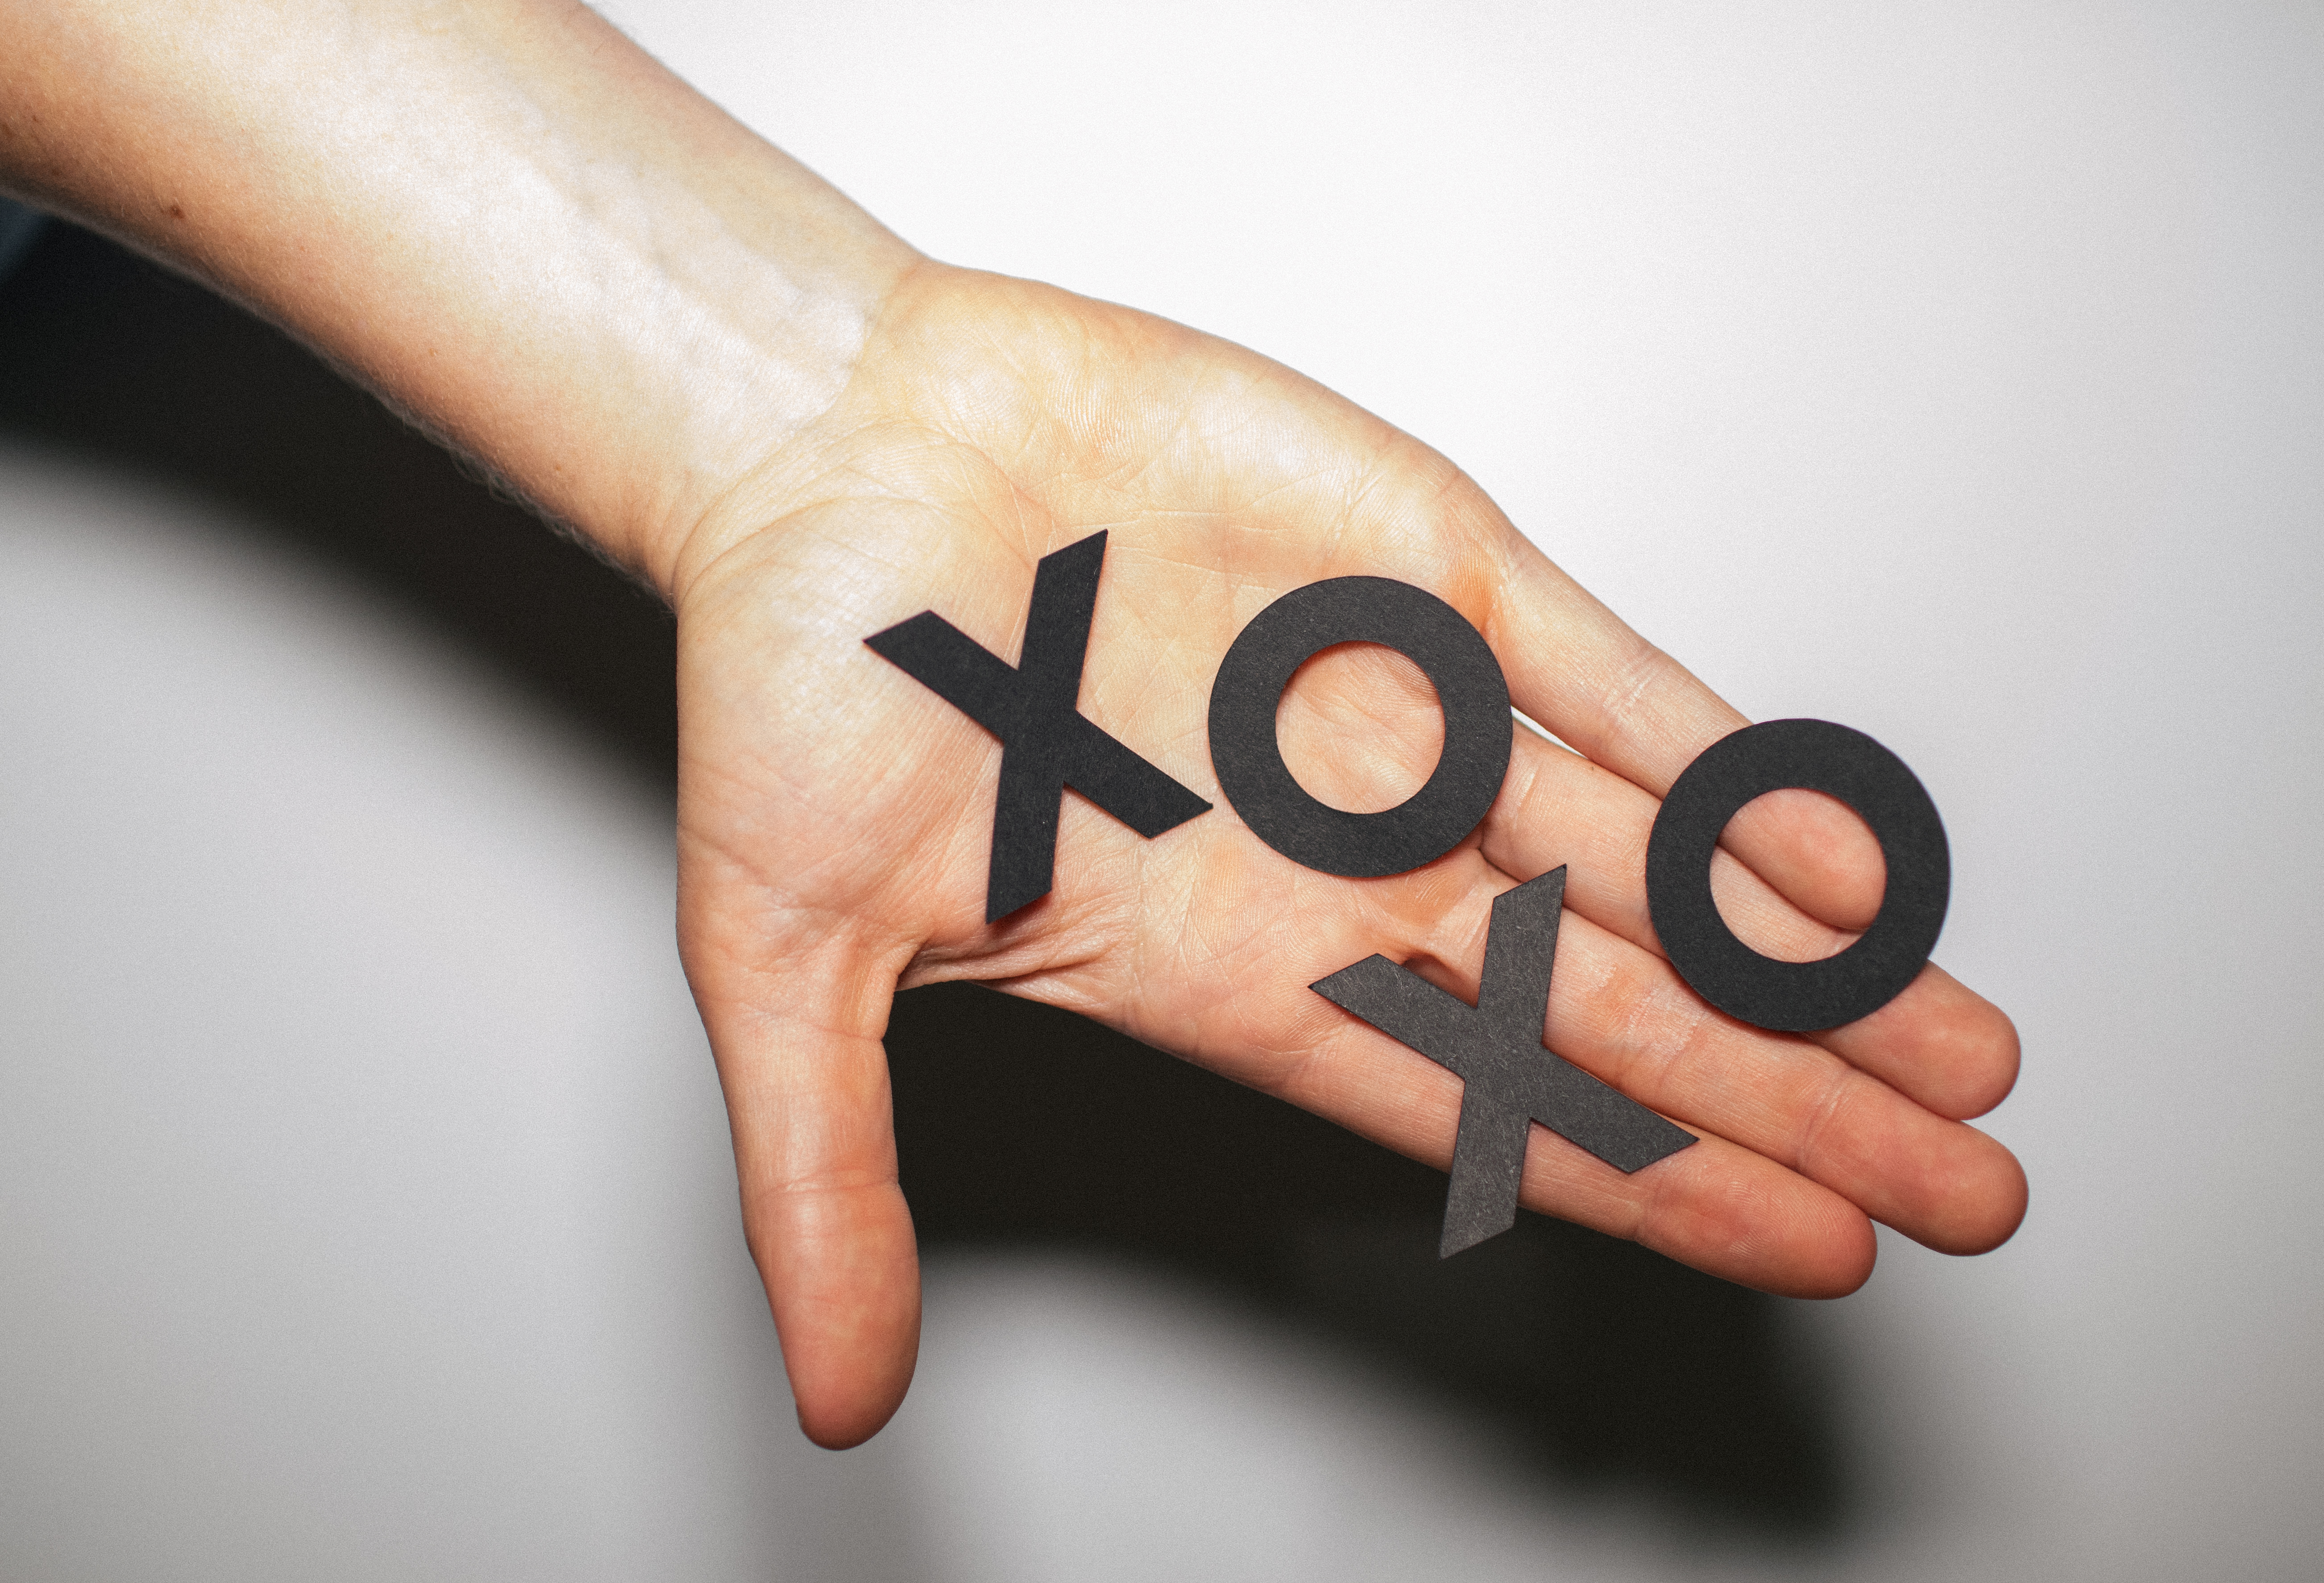 Hand holding X's and O's